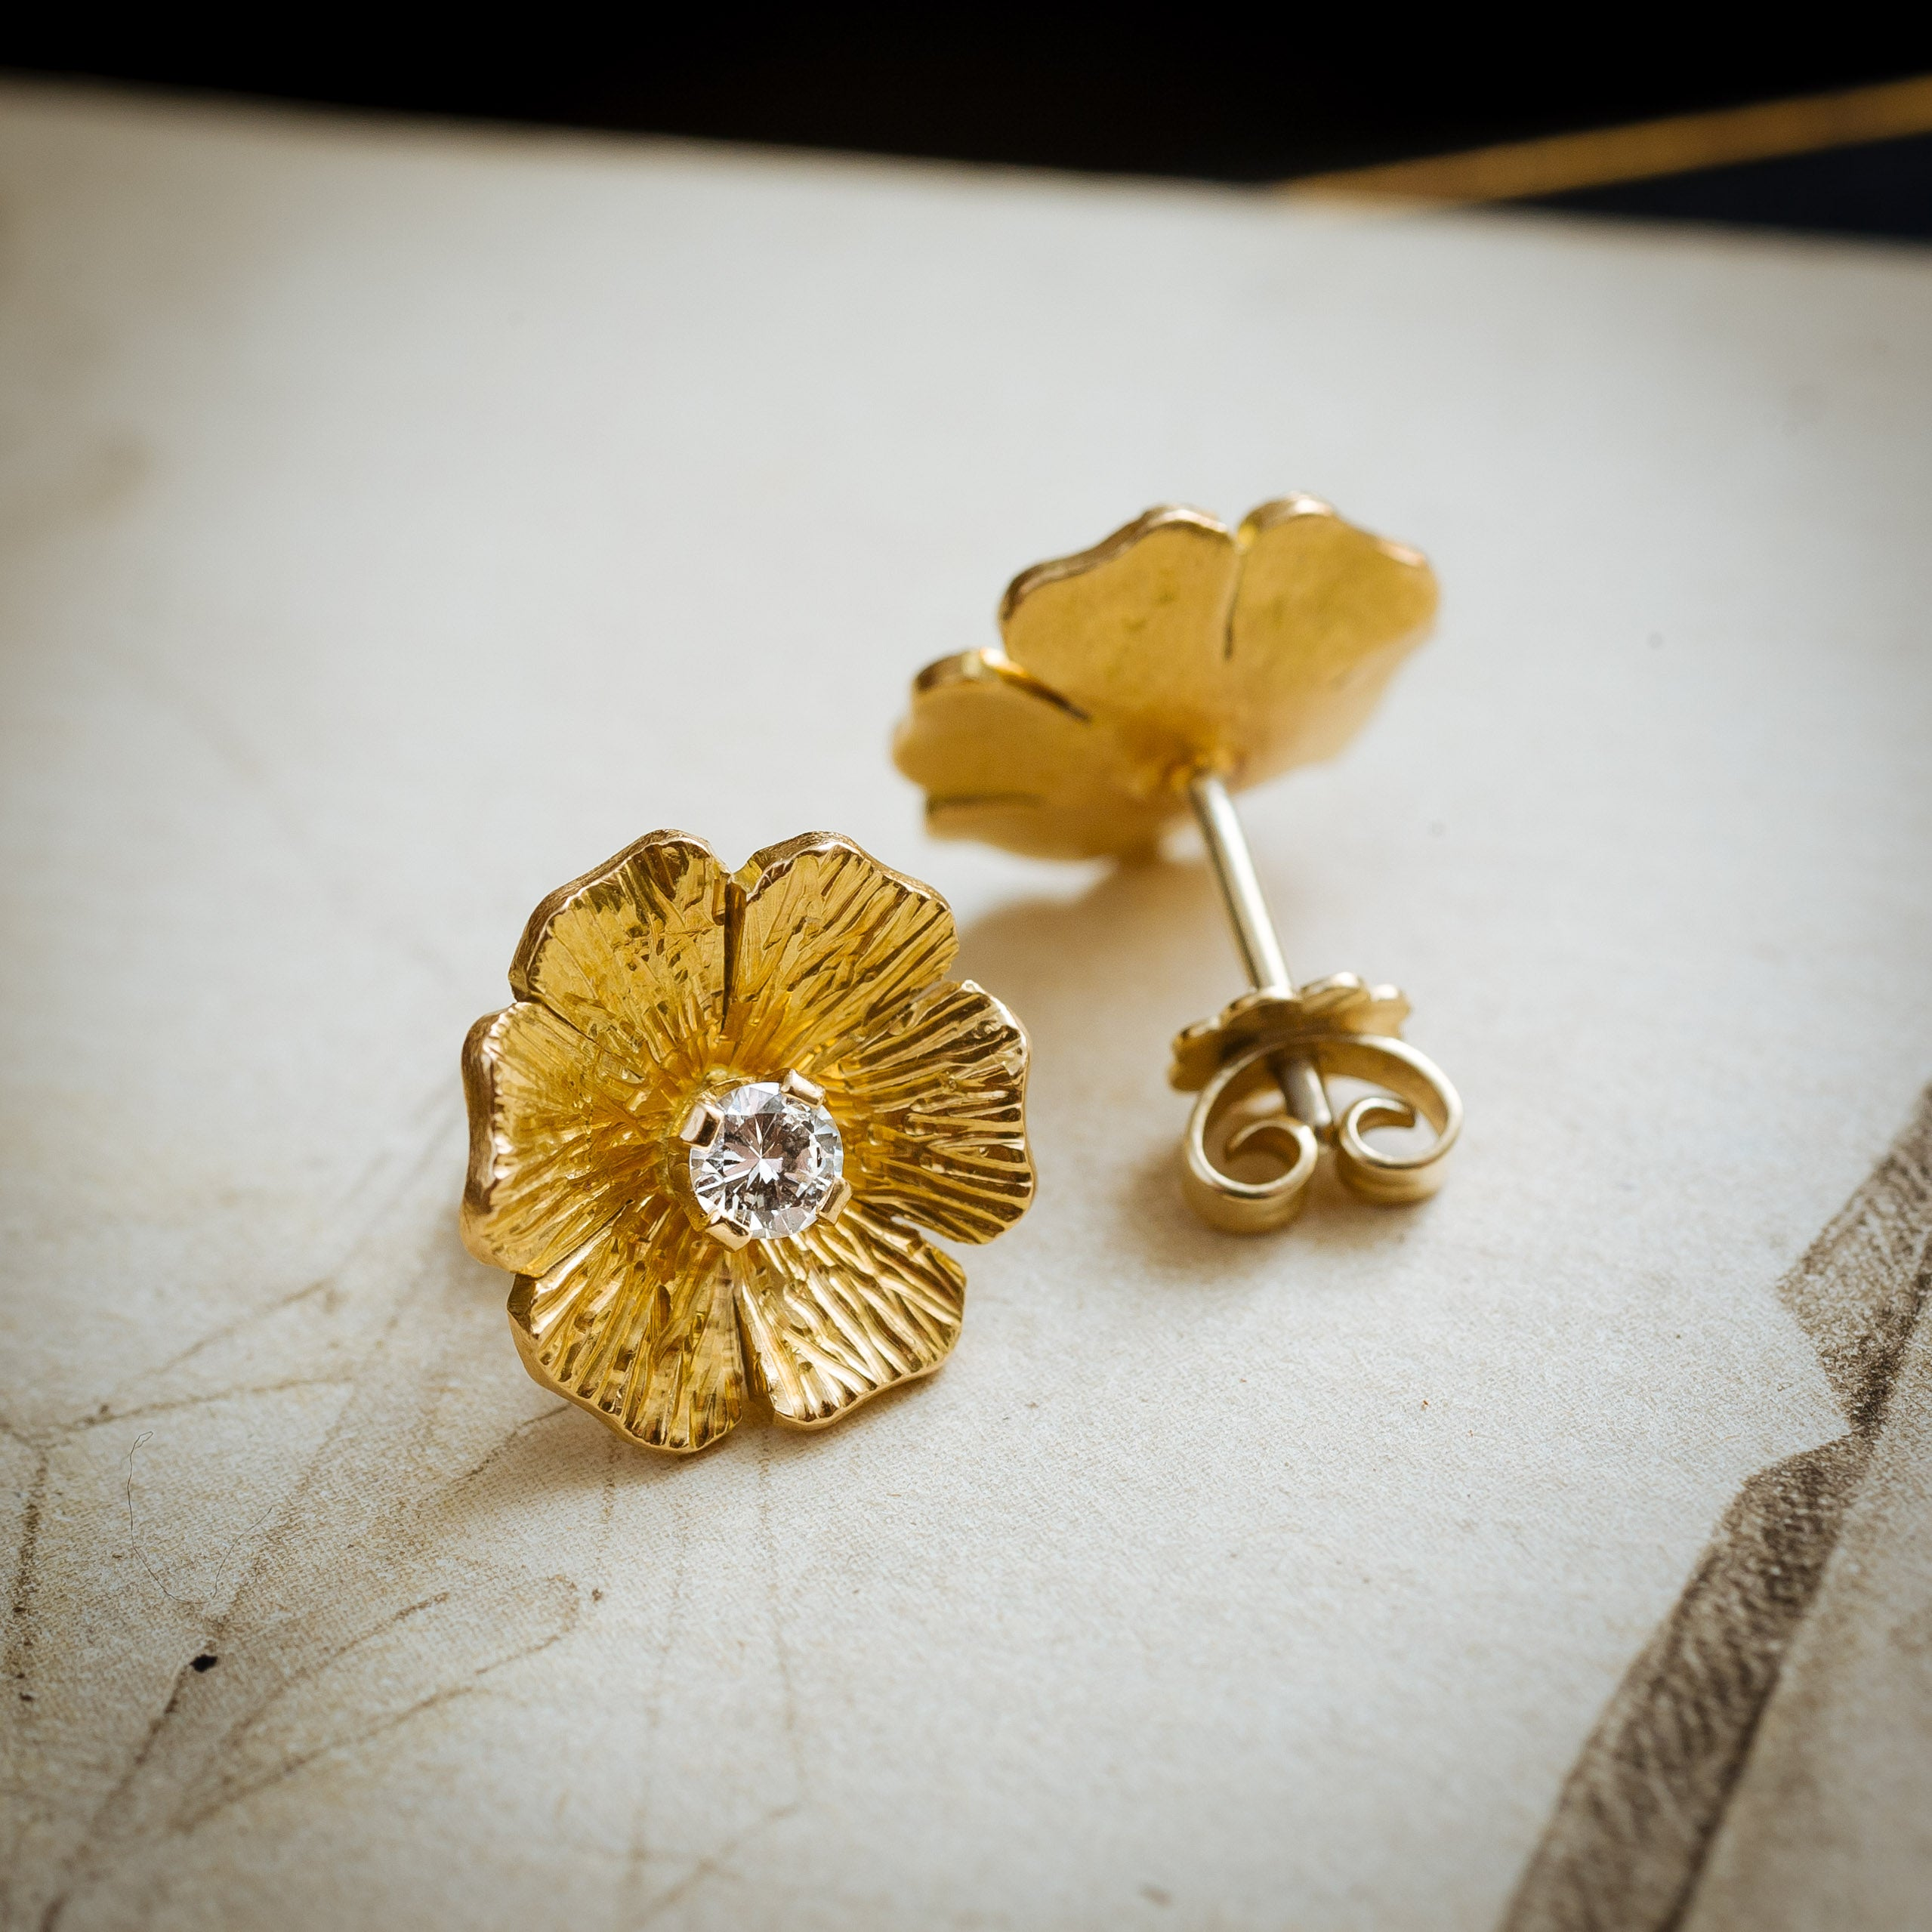 gold back website yellow s vintage diamond antique lovely estate jewellry diamonds earrings carat stud screw